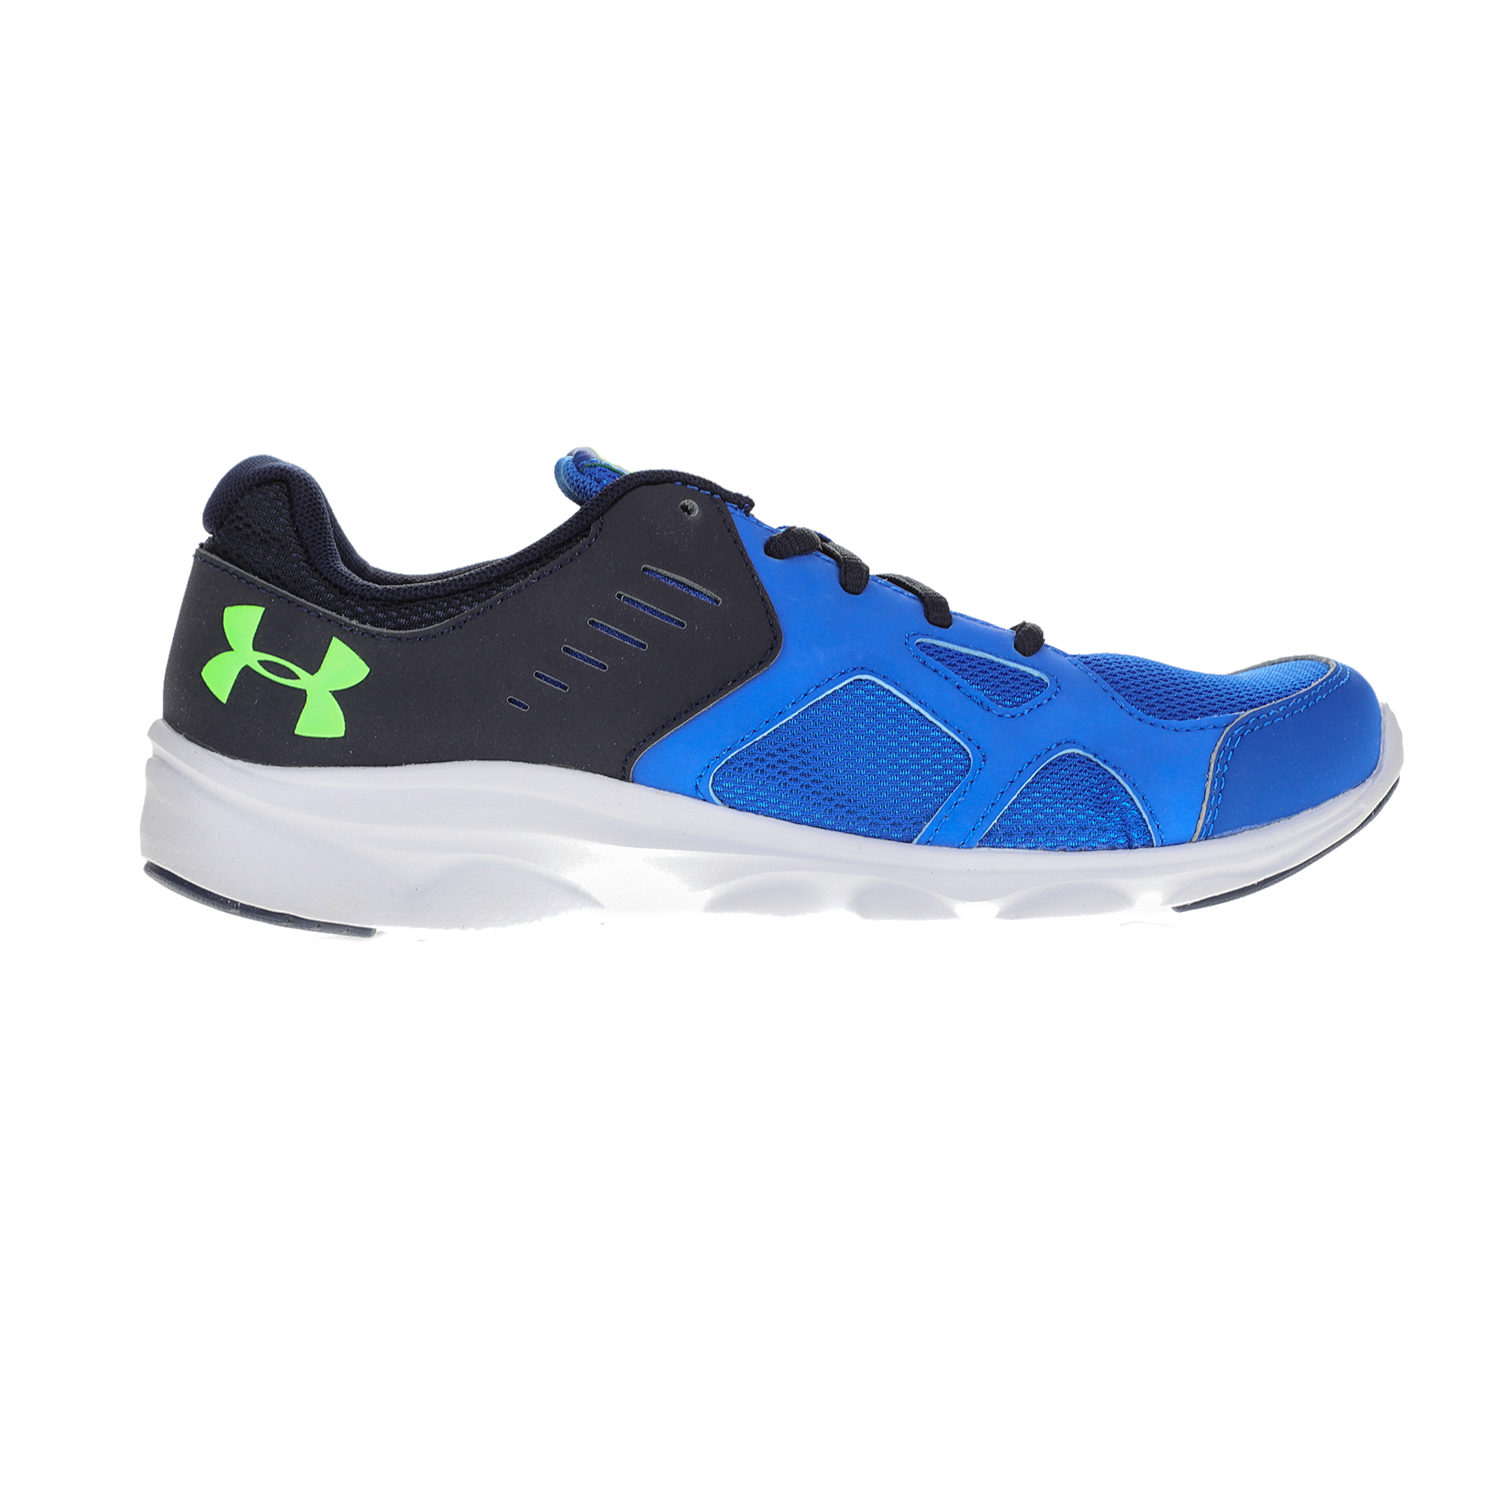 UNDER ARMOUR – Αγορίστικα αθλητικά παπούτσια UNDER ARMOUR BGS PACE RN μπλε